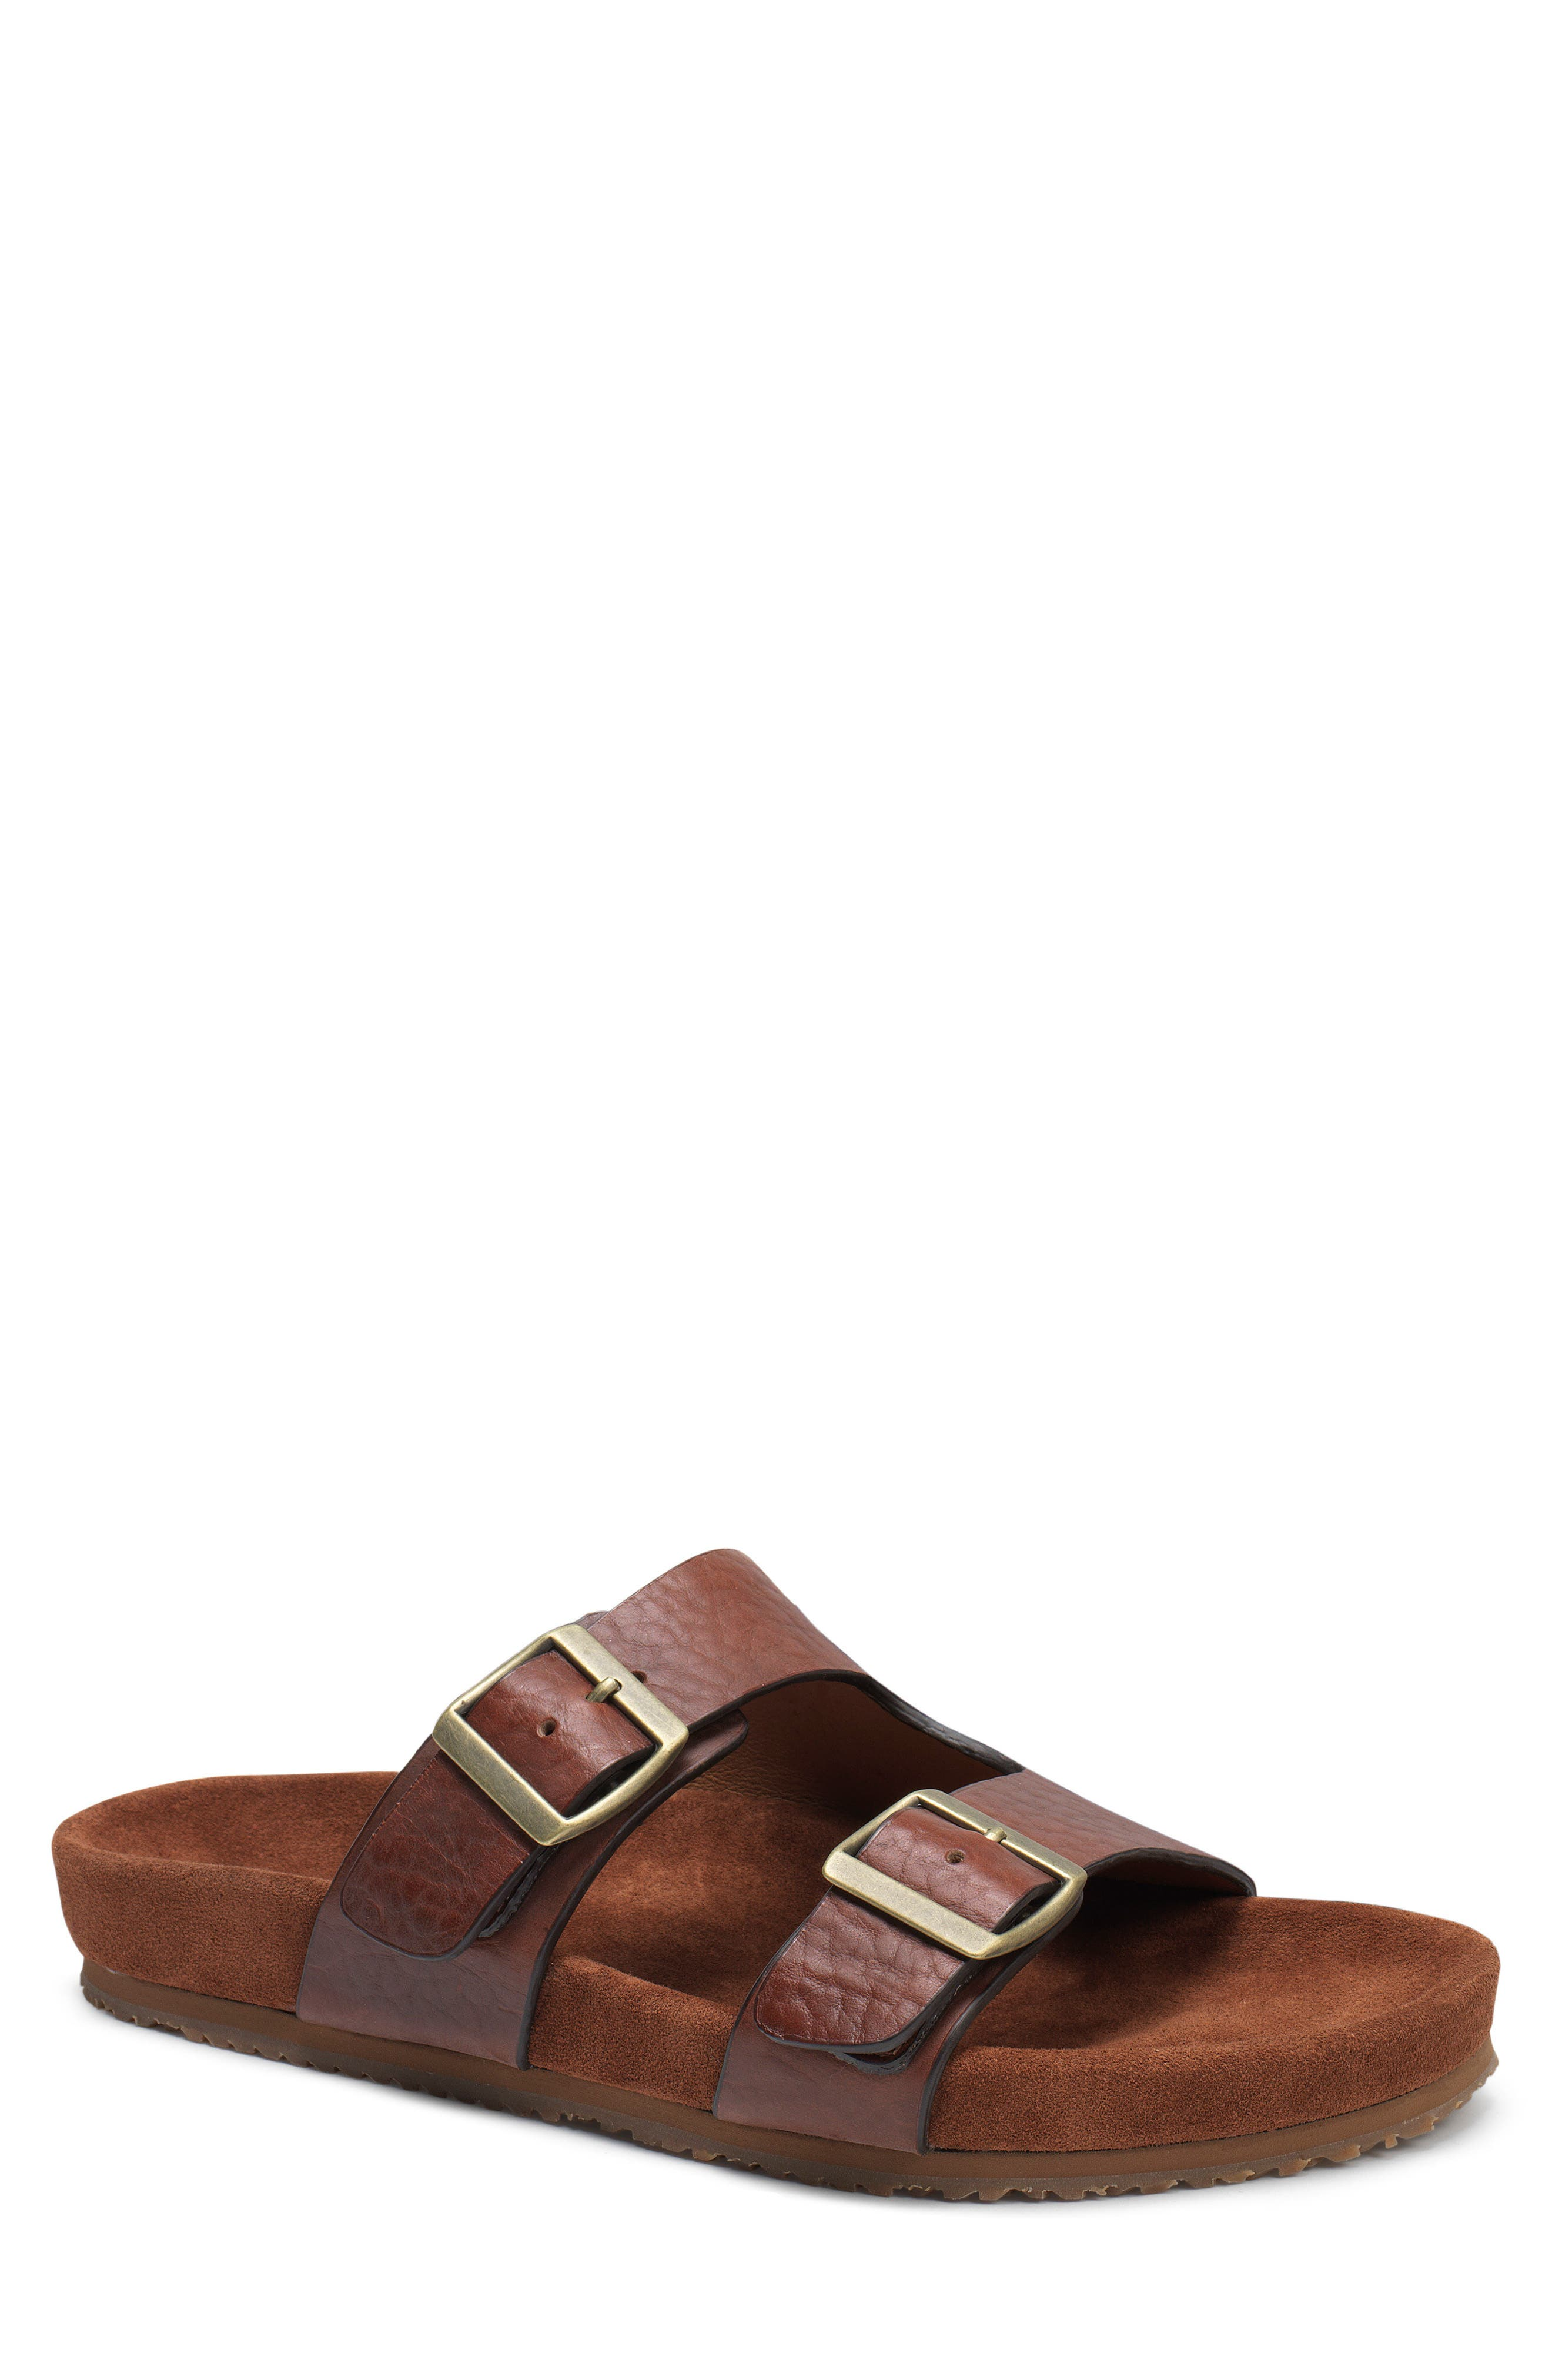 Findley Slide Sandal,                             Main thumbnail 1, color,                             235